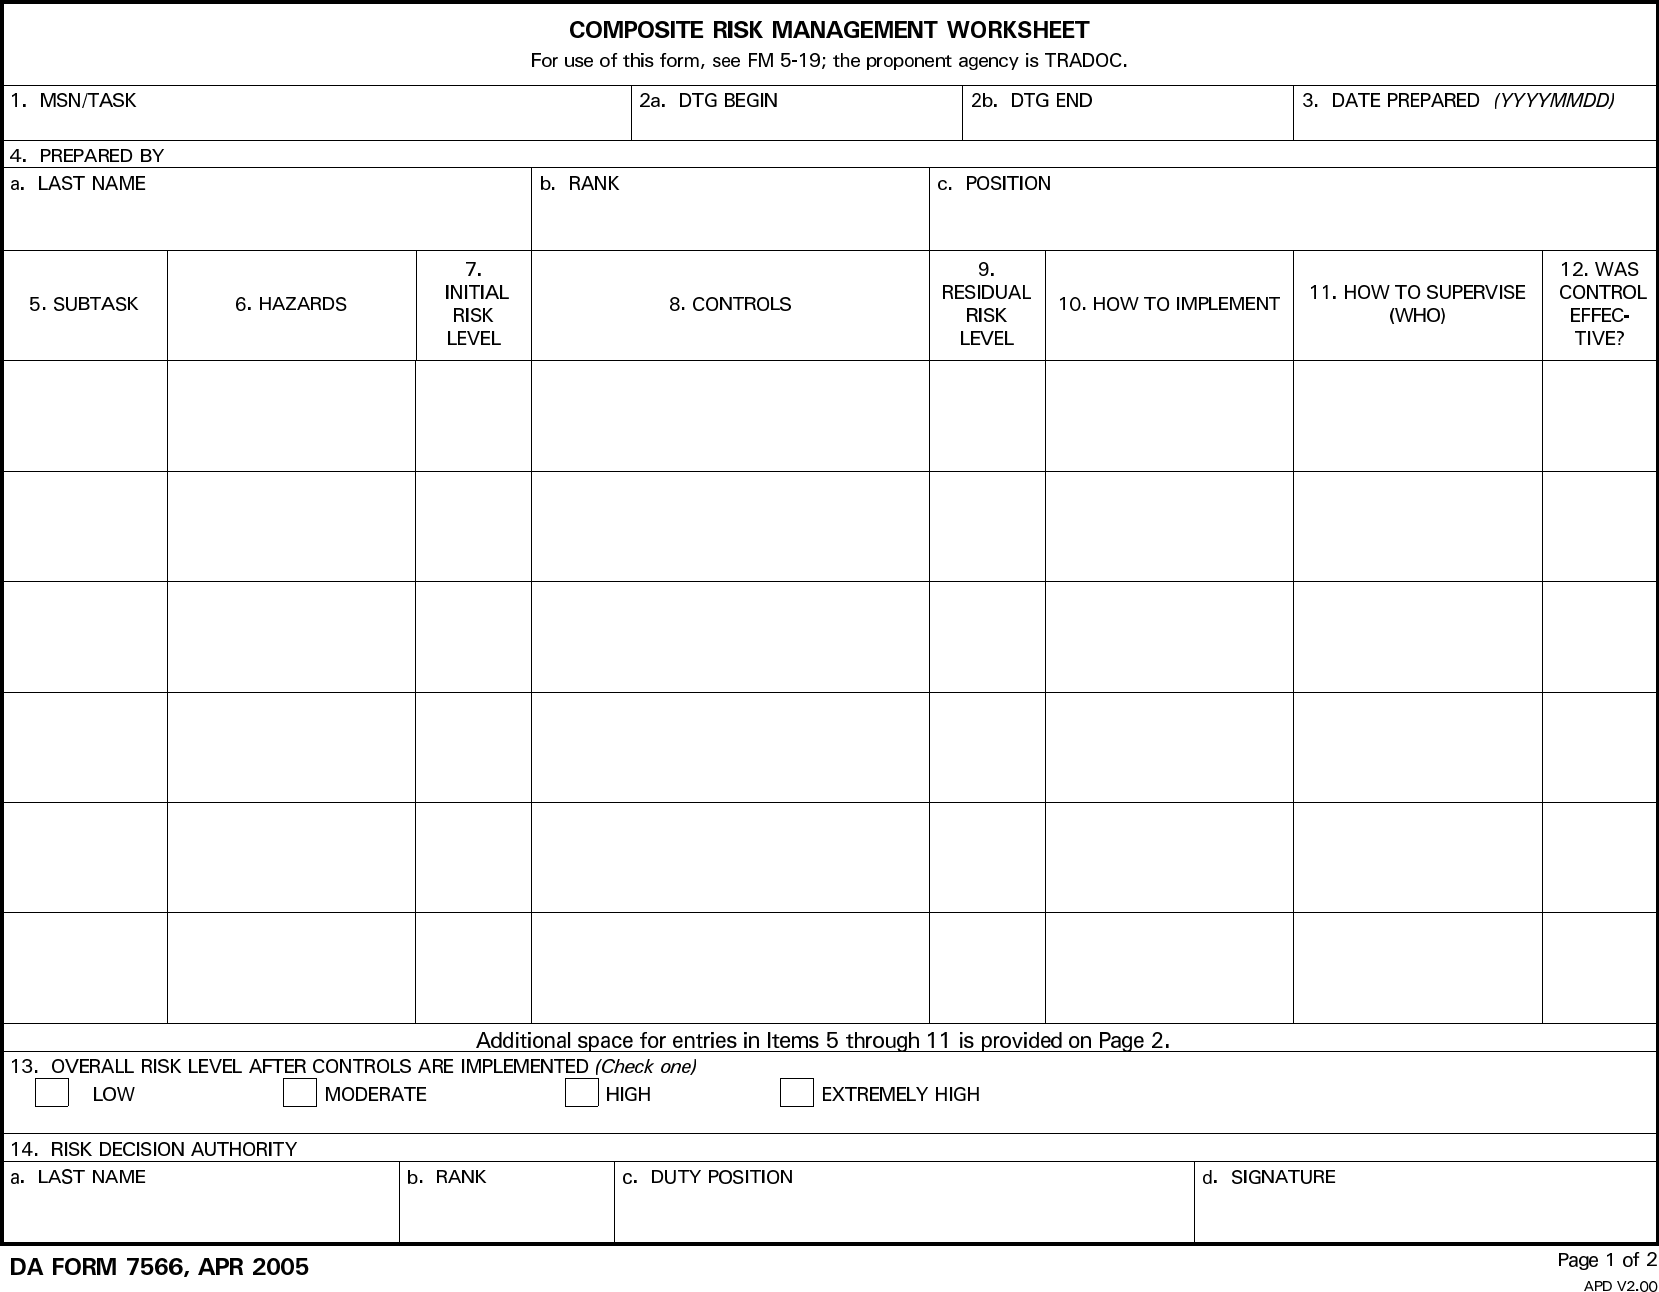 Composite Risk Management Form Template Free Download